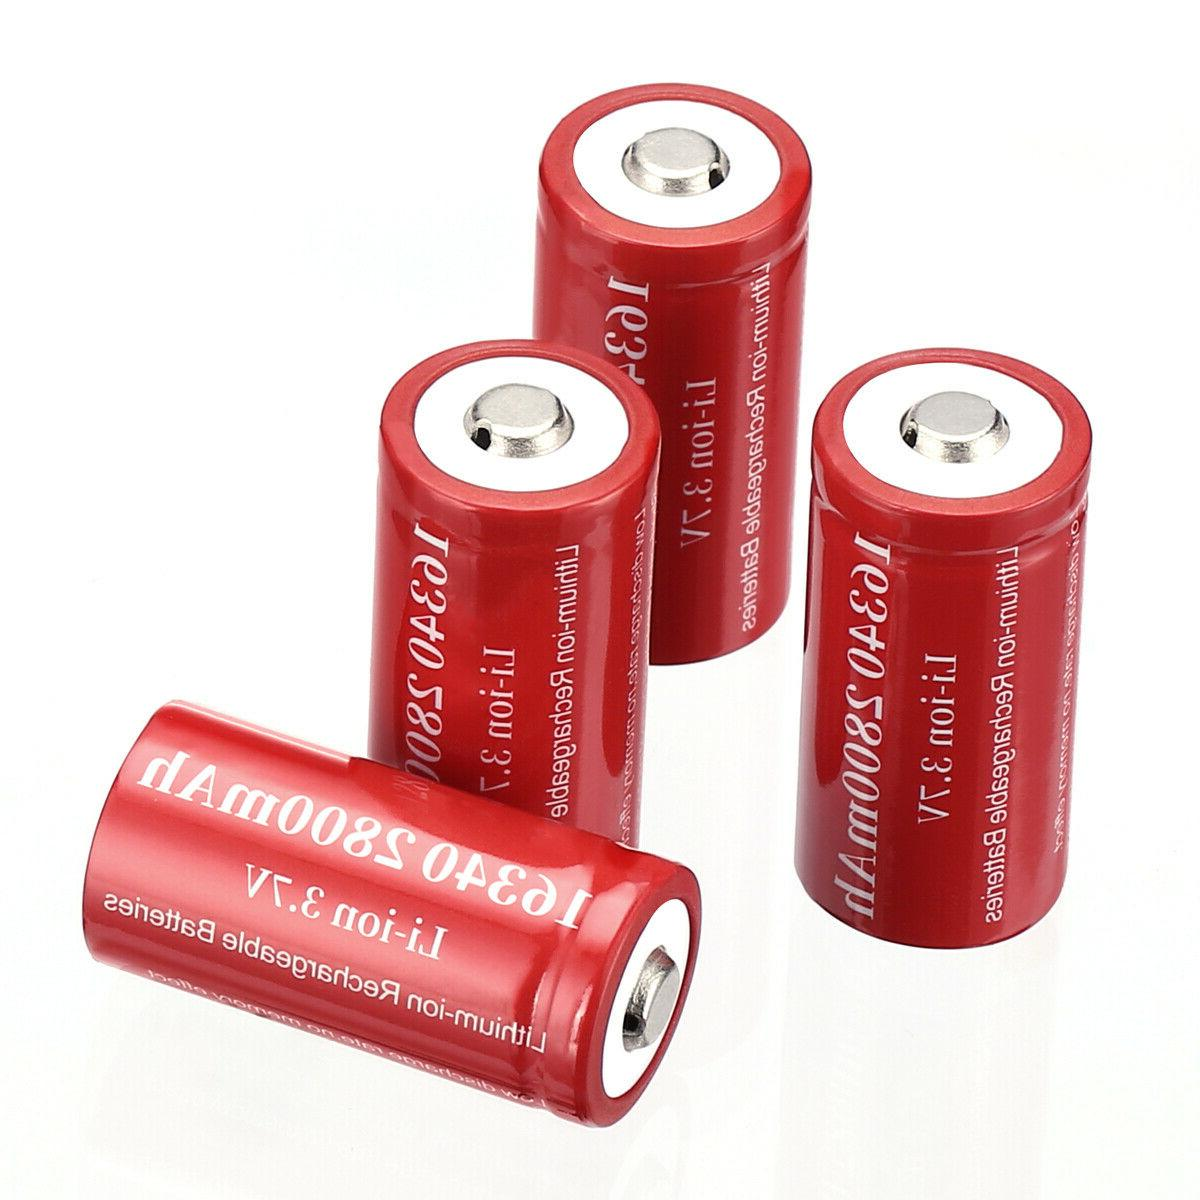 2800mAh Rechargeable Li-ion Battery Charger Lot US